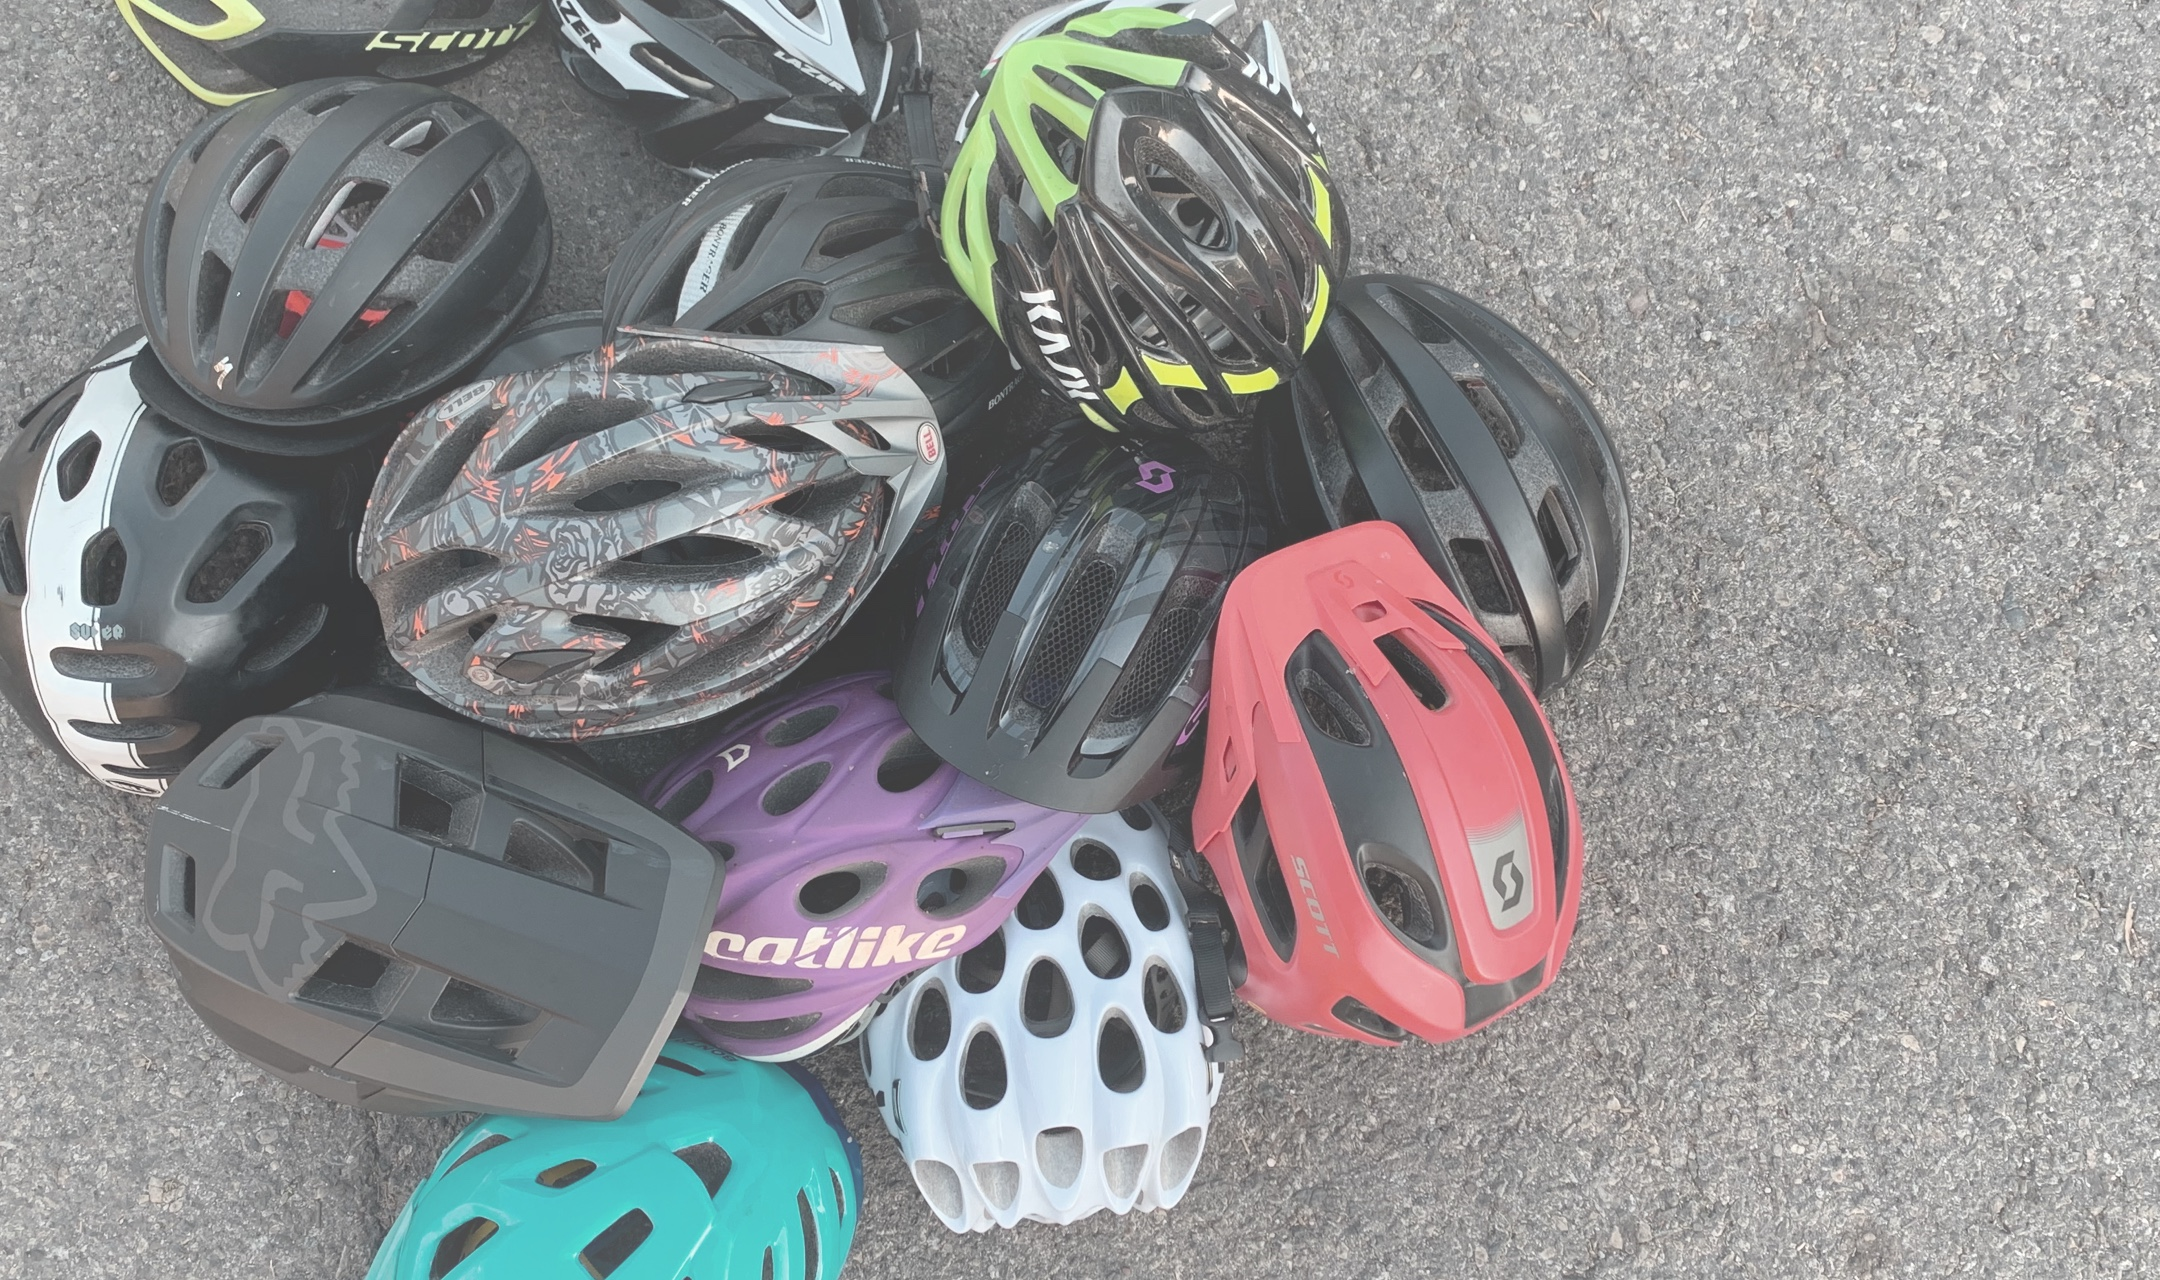 Helmets come in a range of styles and colours. But don't get too attached to them. A helmet is a safety device before anything else and will need replacing should its integrity be compromised.